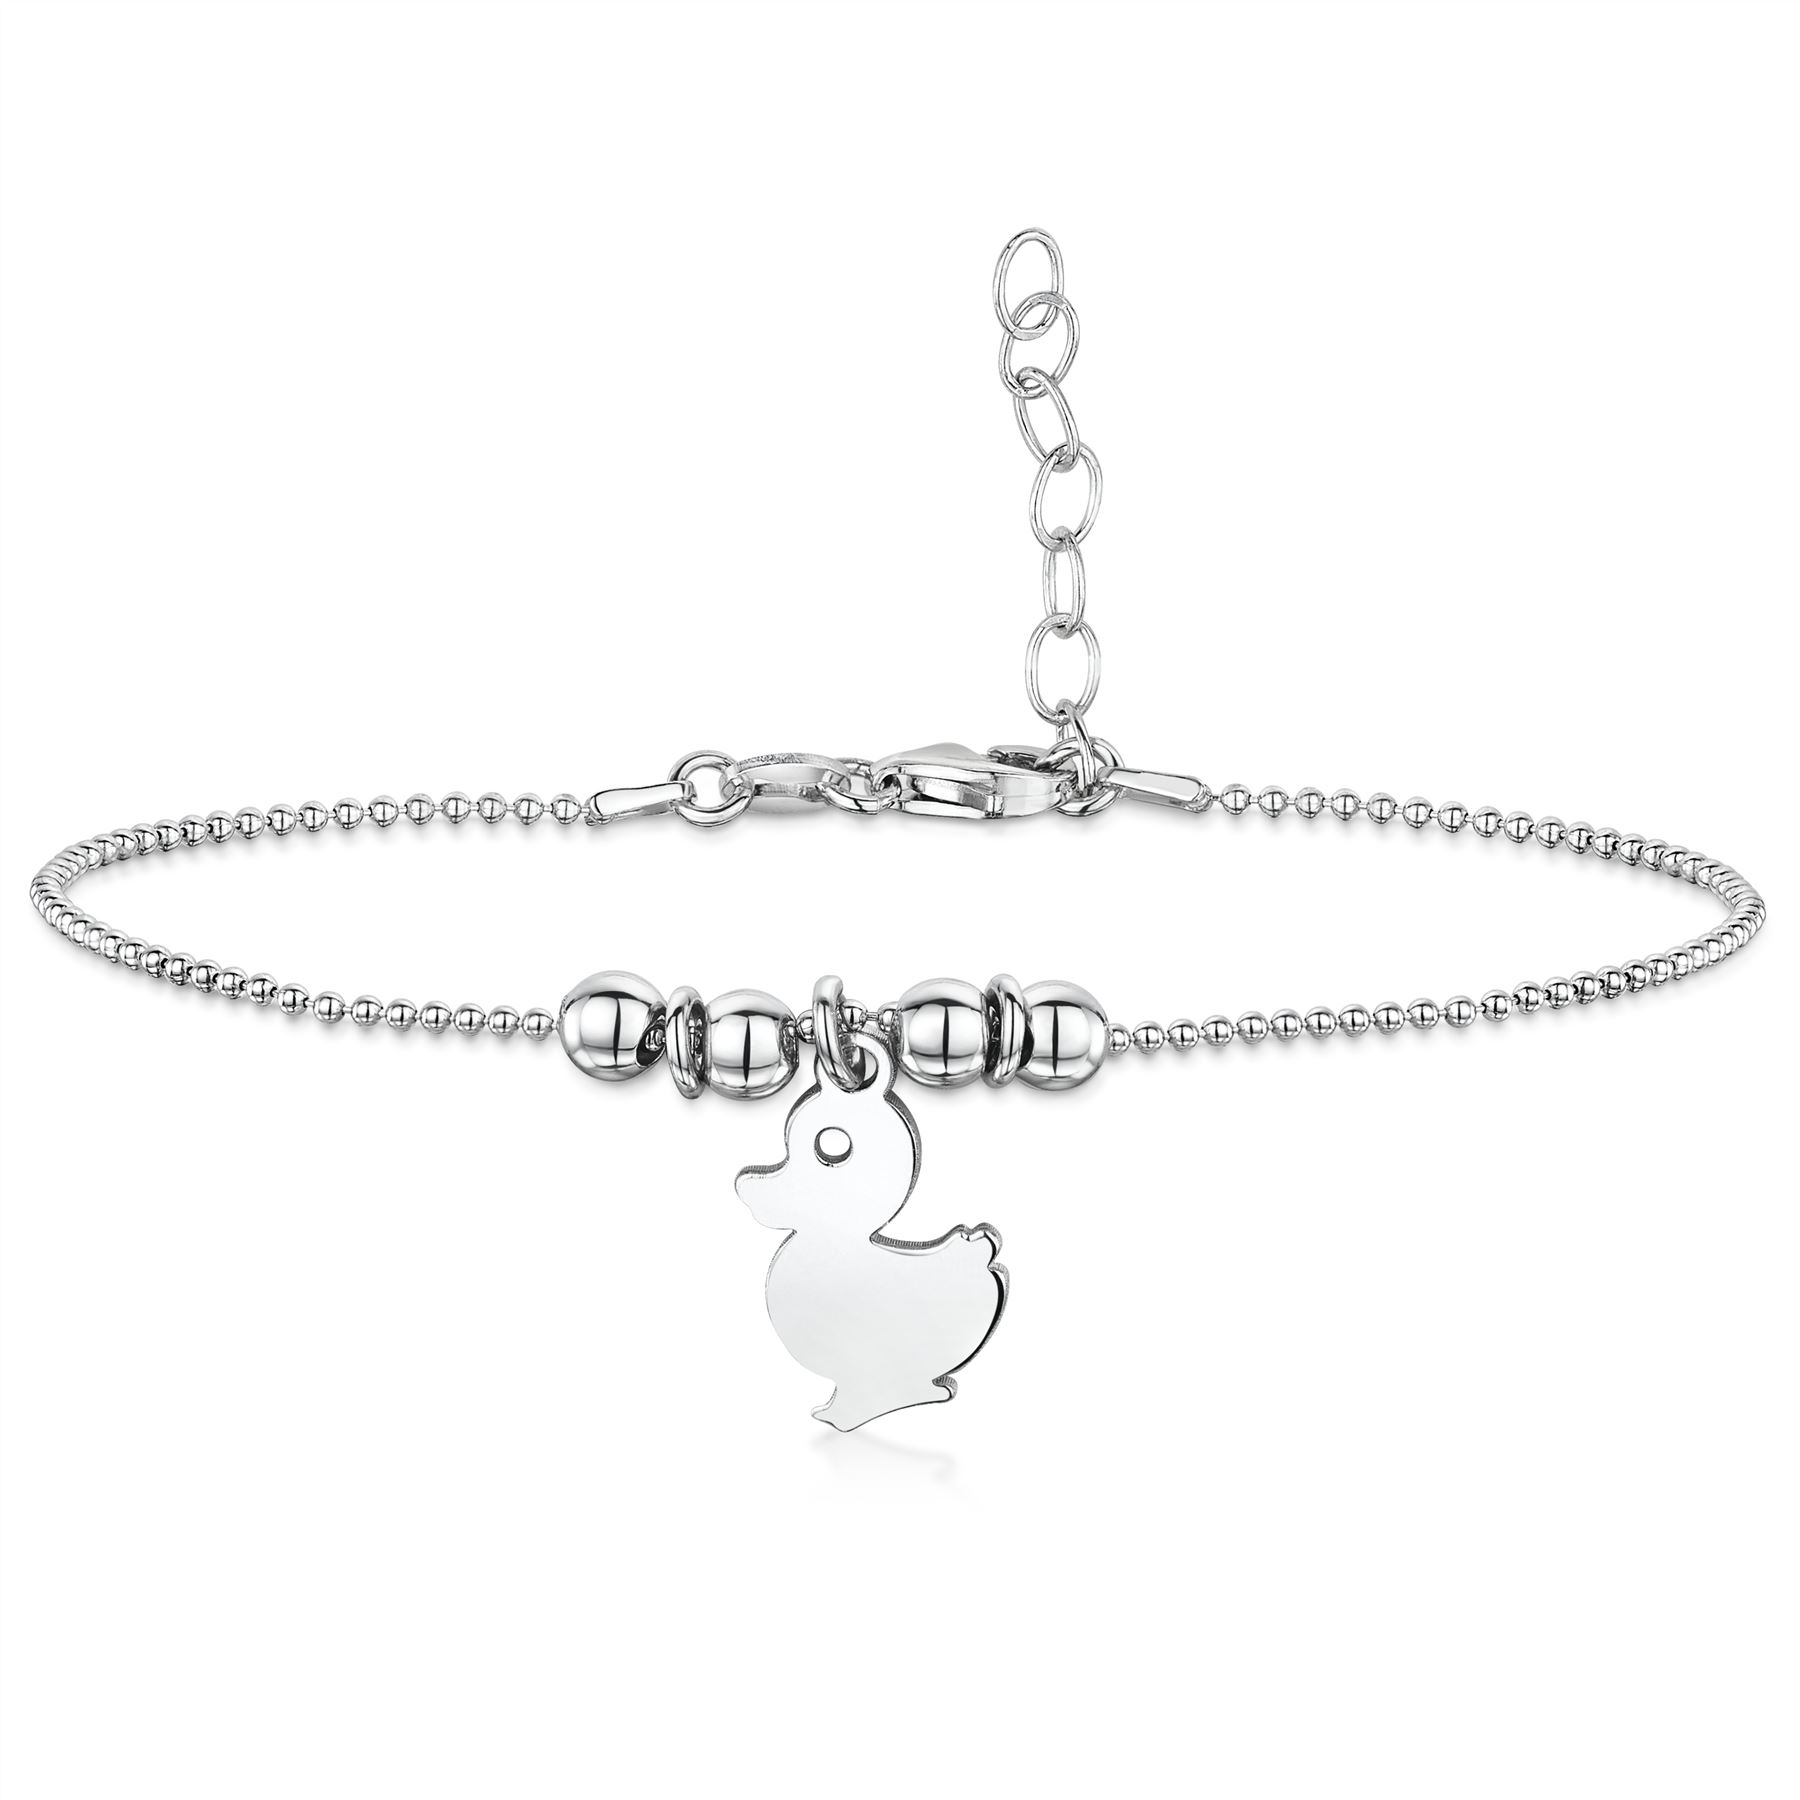 Amberta-Jewelry-925-Sterling-Silver-Adjustable-Anklet-for-Women-Made-in-Italy miniature 15